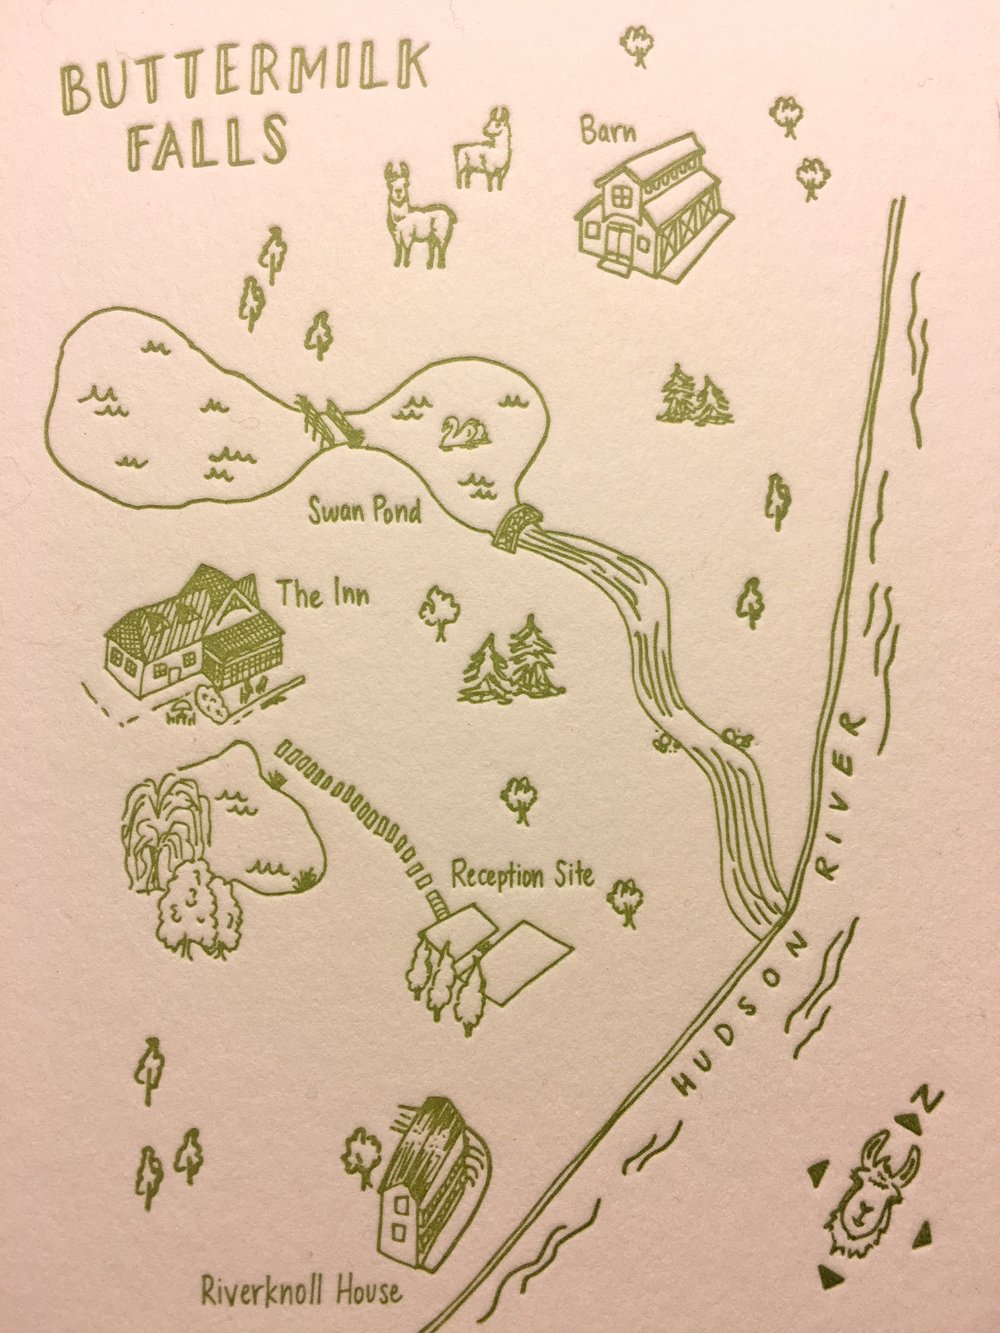 buttermilk falls map.jpg